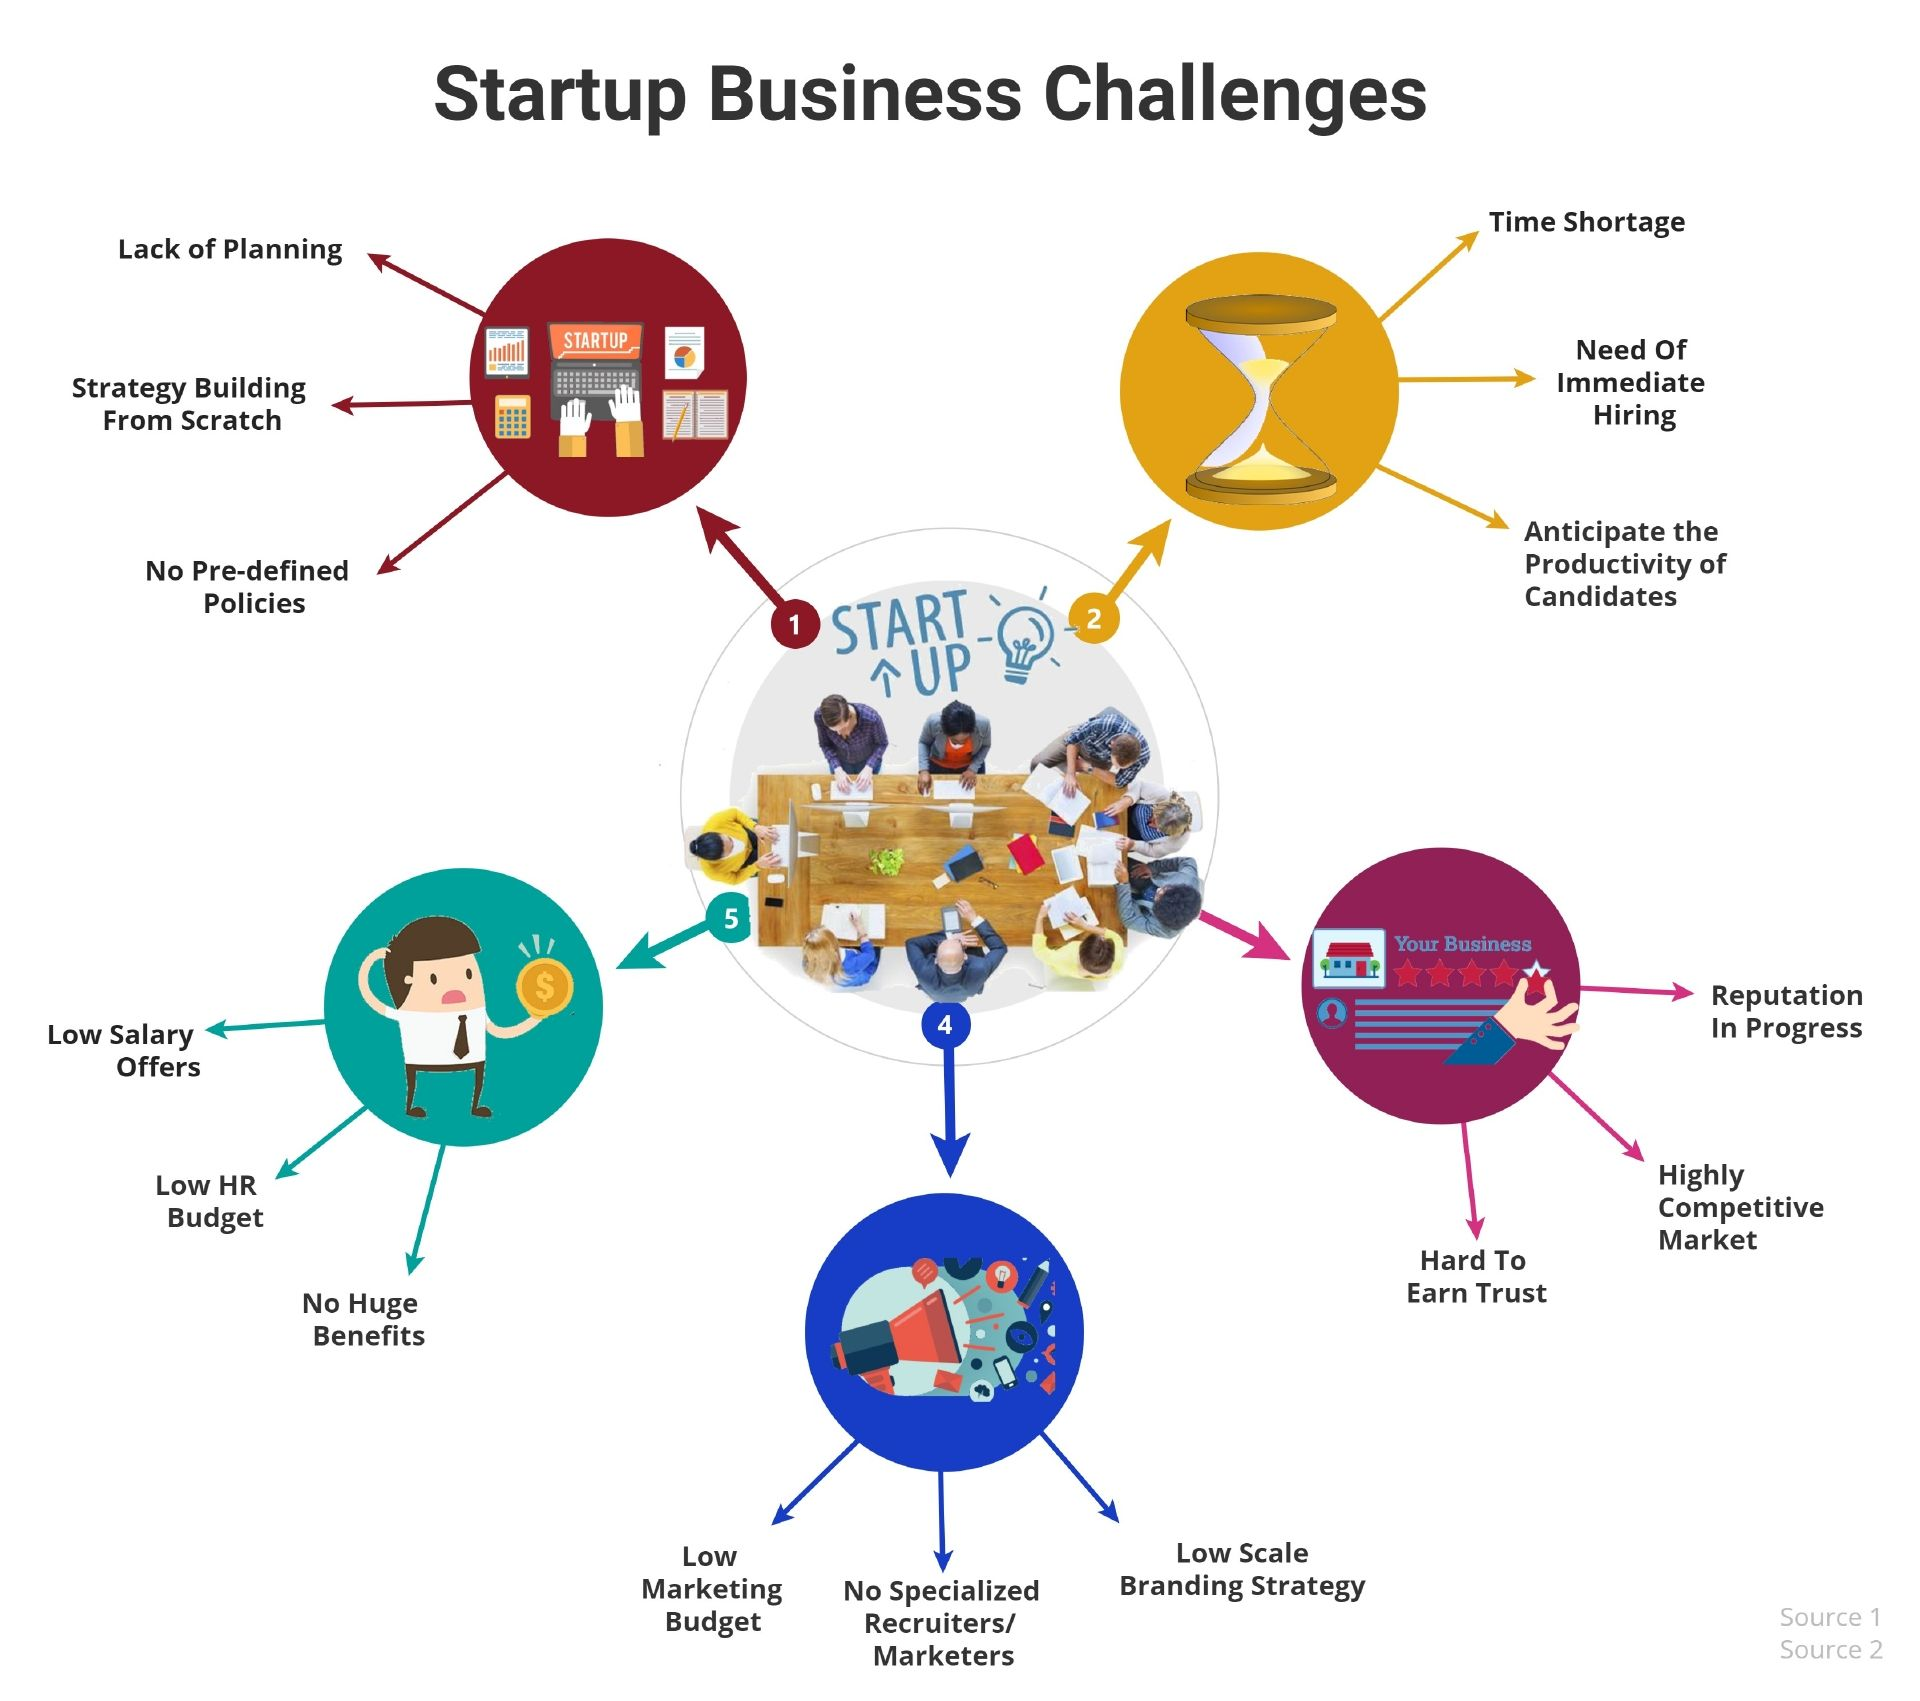 Startup Business Has To Face Many Challenges Regarding Hr There